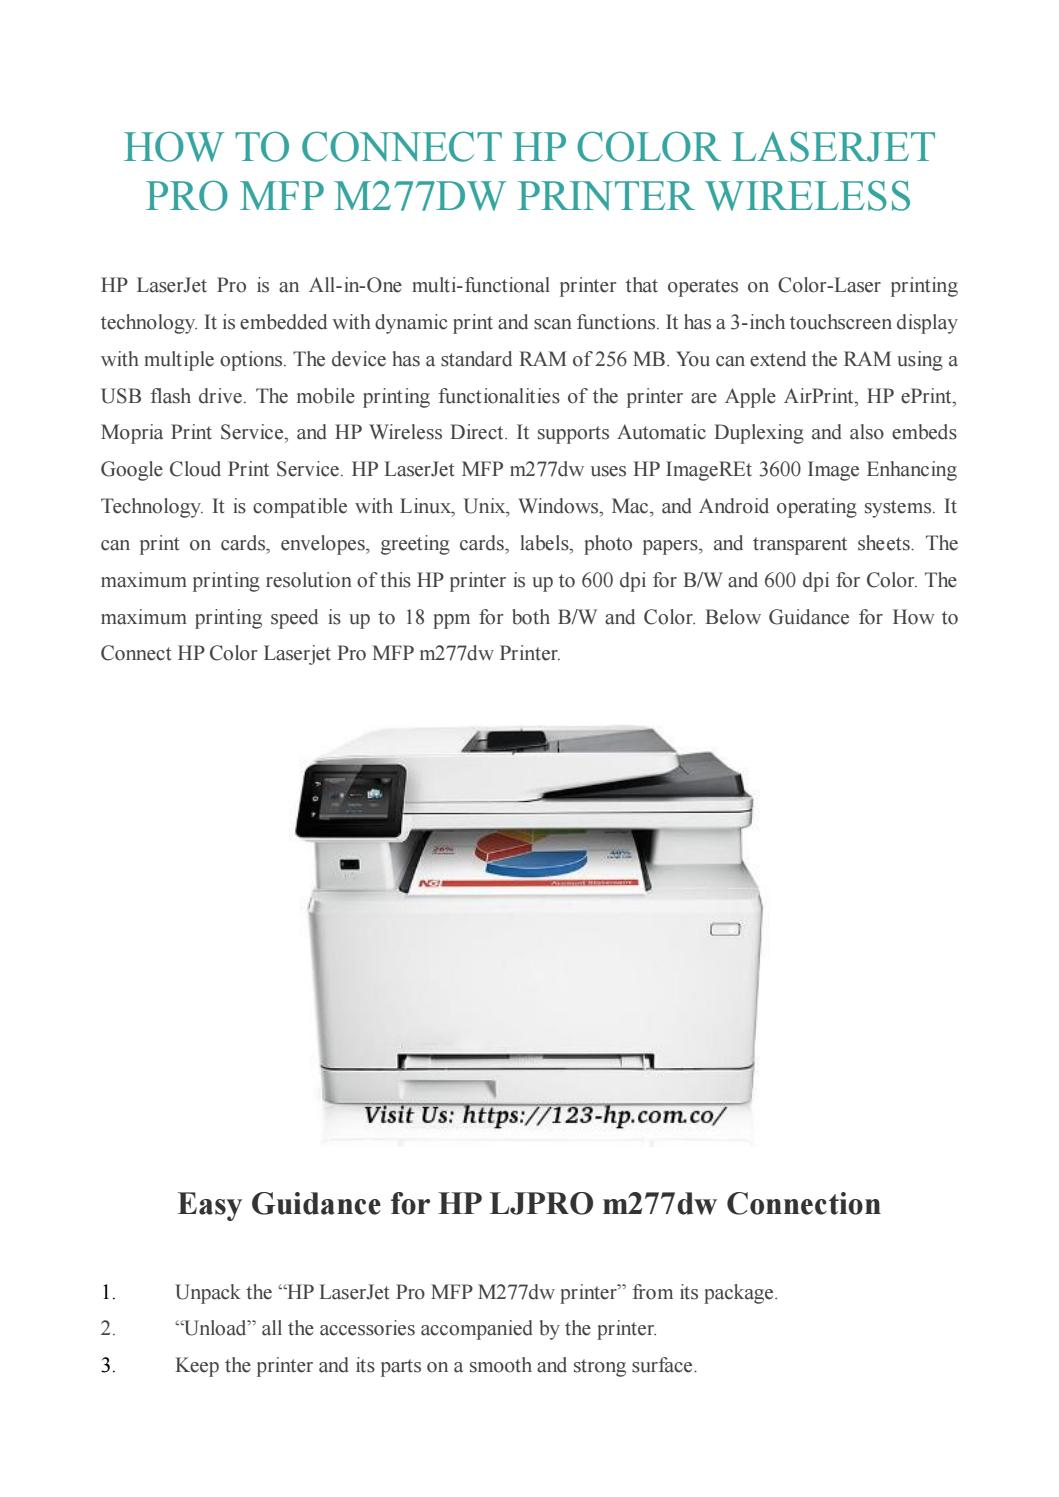 HP Printers - No Connection after Router or Wi-Fi Settings Change ...